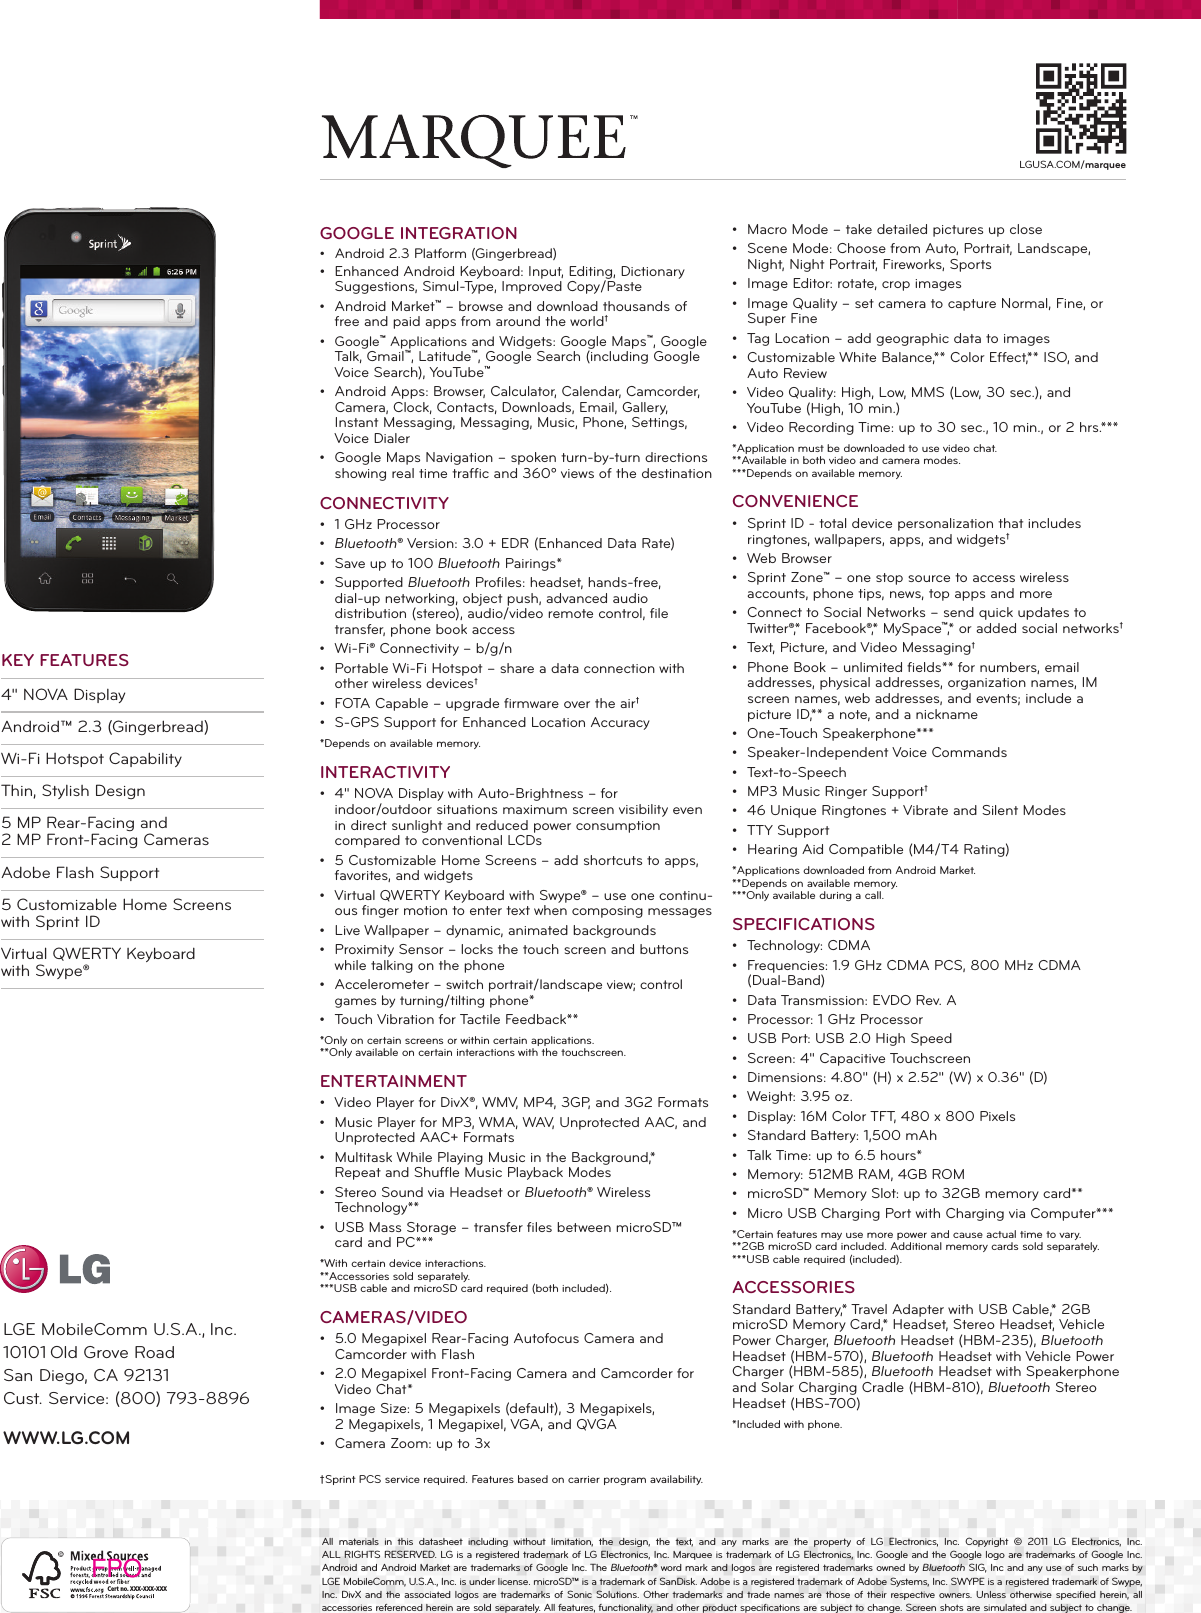 Page 2 of 2 - LG LS855 Datasheet_G_Slate_LG User Manual Data Sheet  Datasheet Marquee